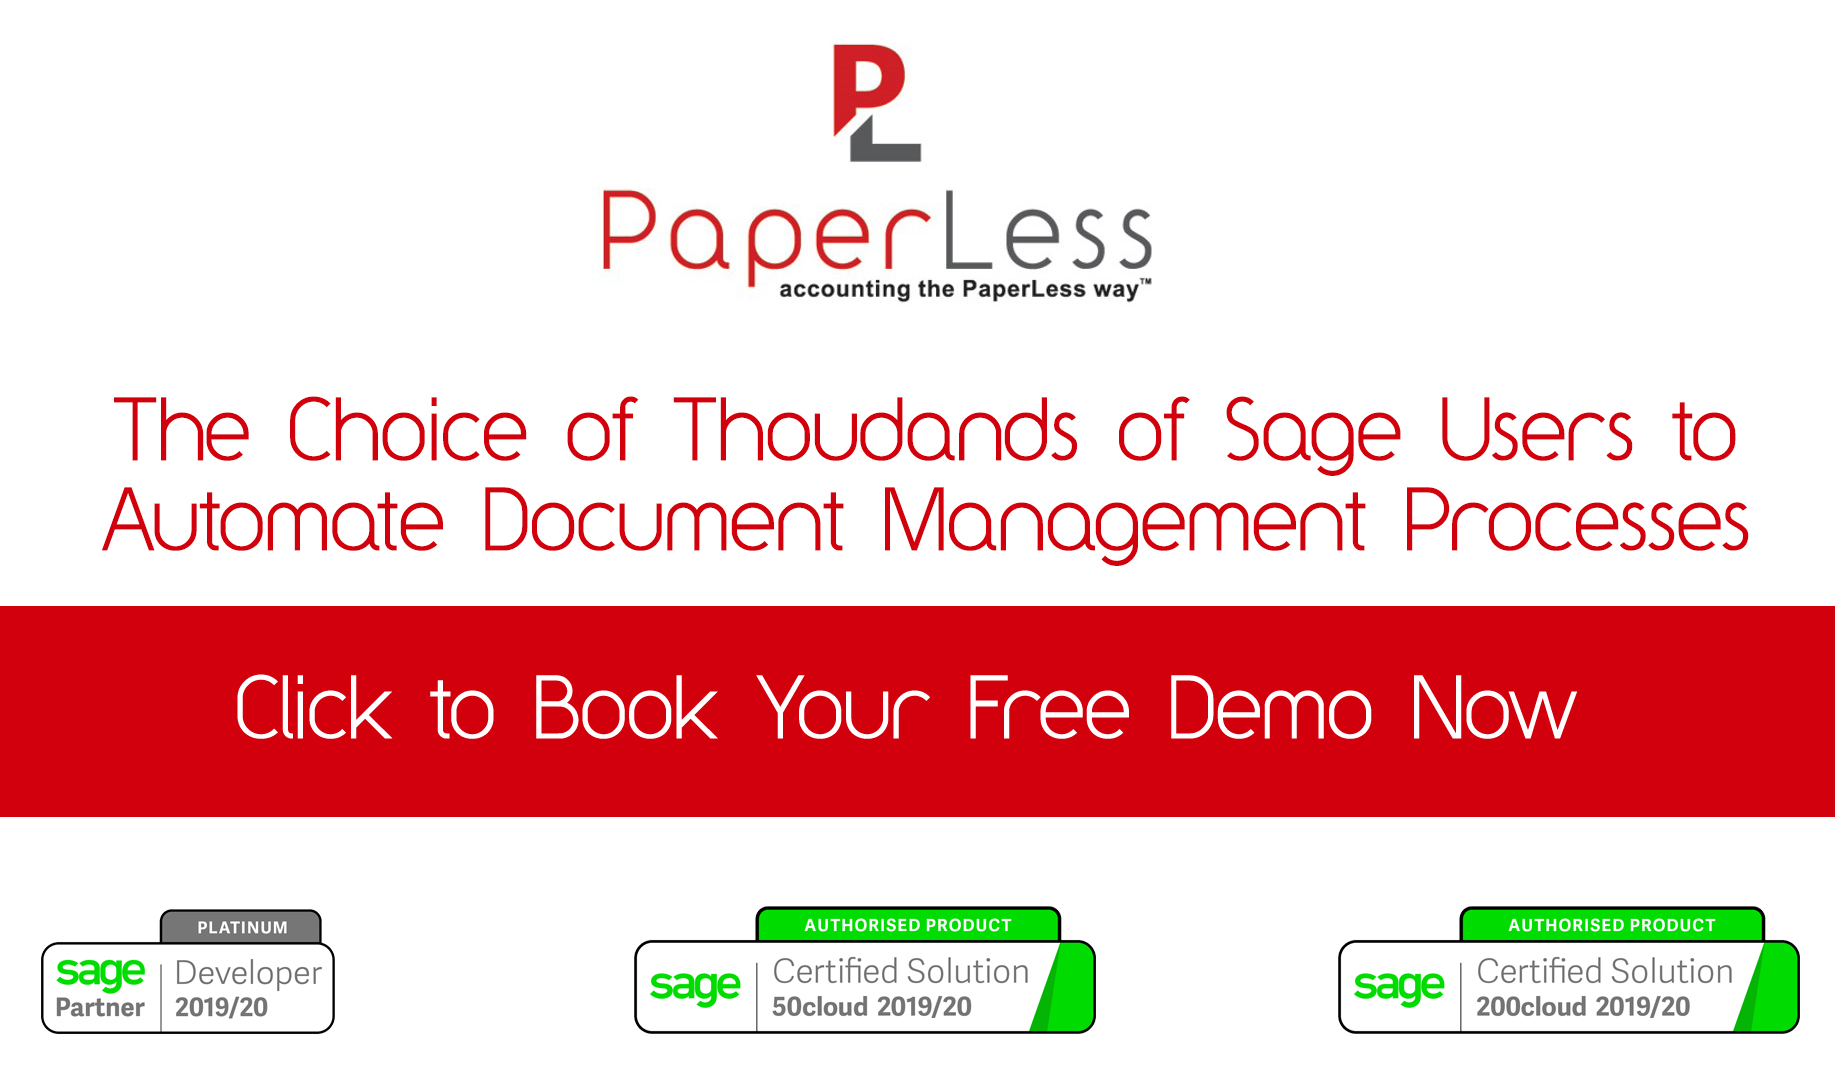 Click here to Book Your Free Demo